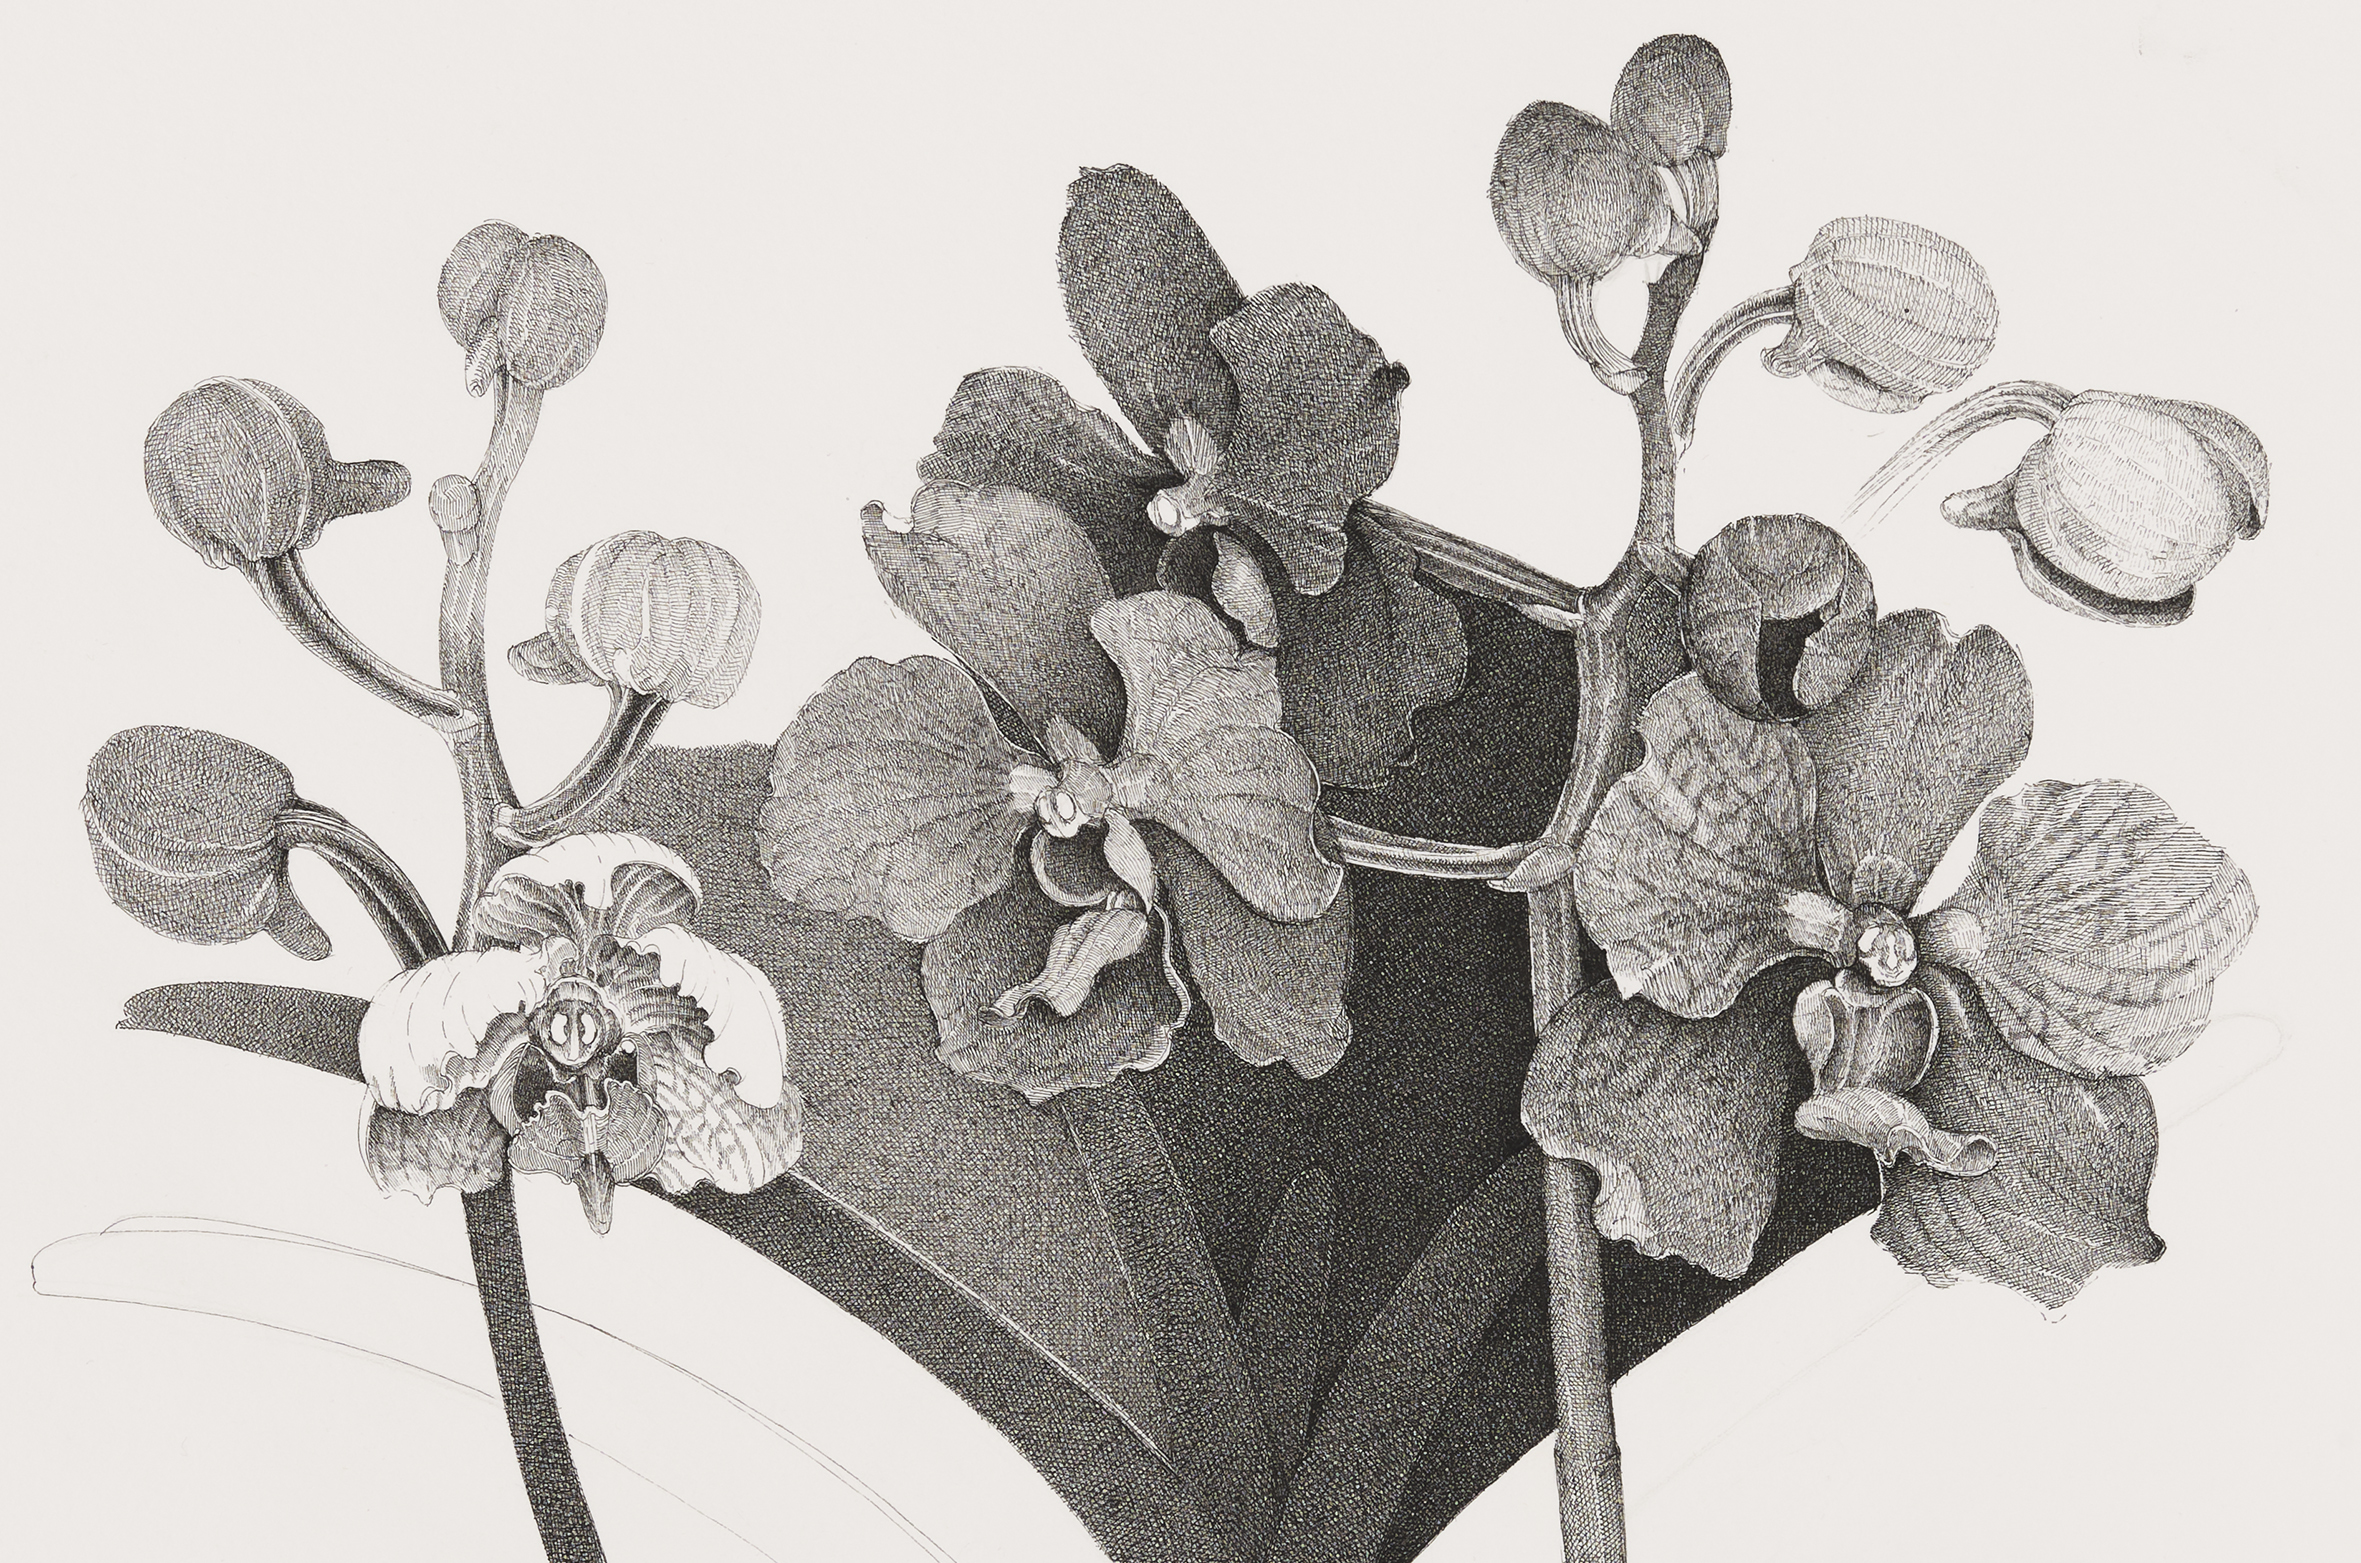 Charmian Johnson, not titled (detail), unknown date, ink on paper, 34 x 26 in. (85 x 65 cm) by